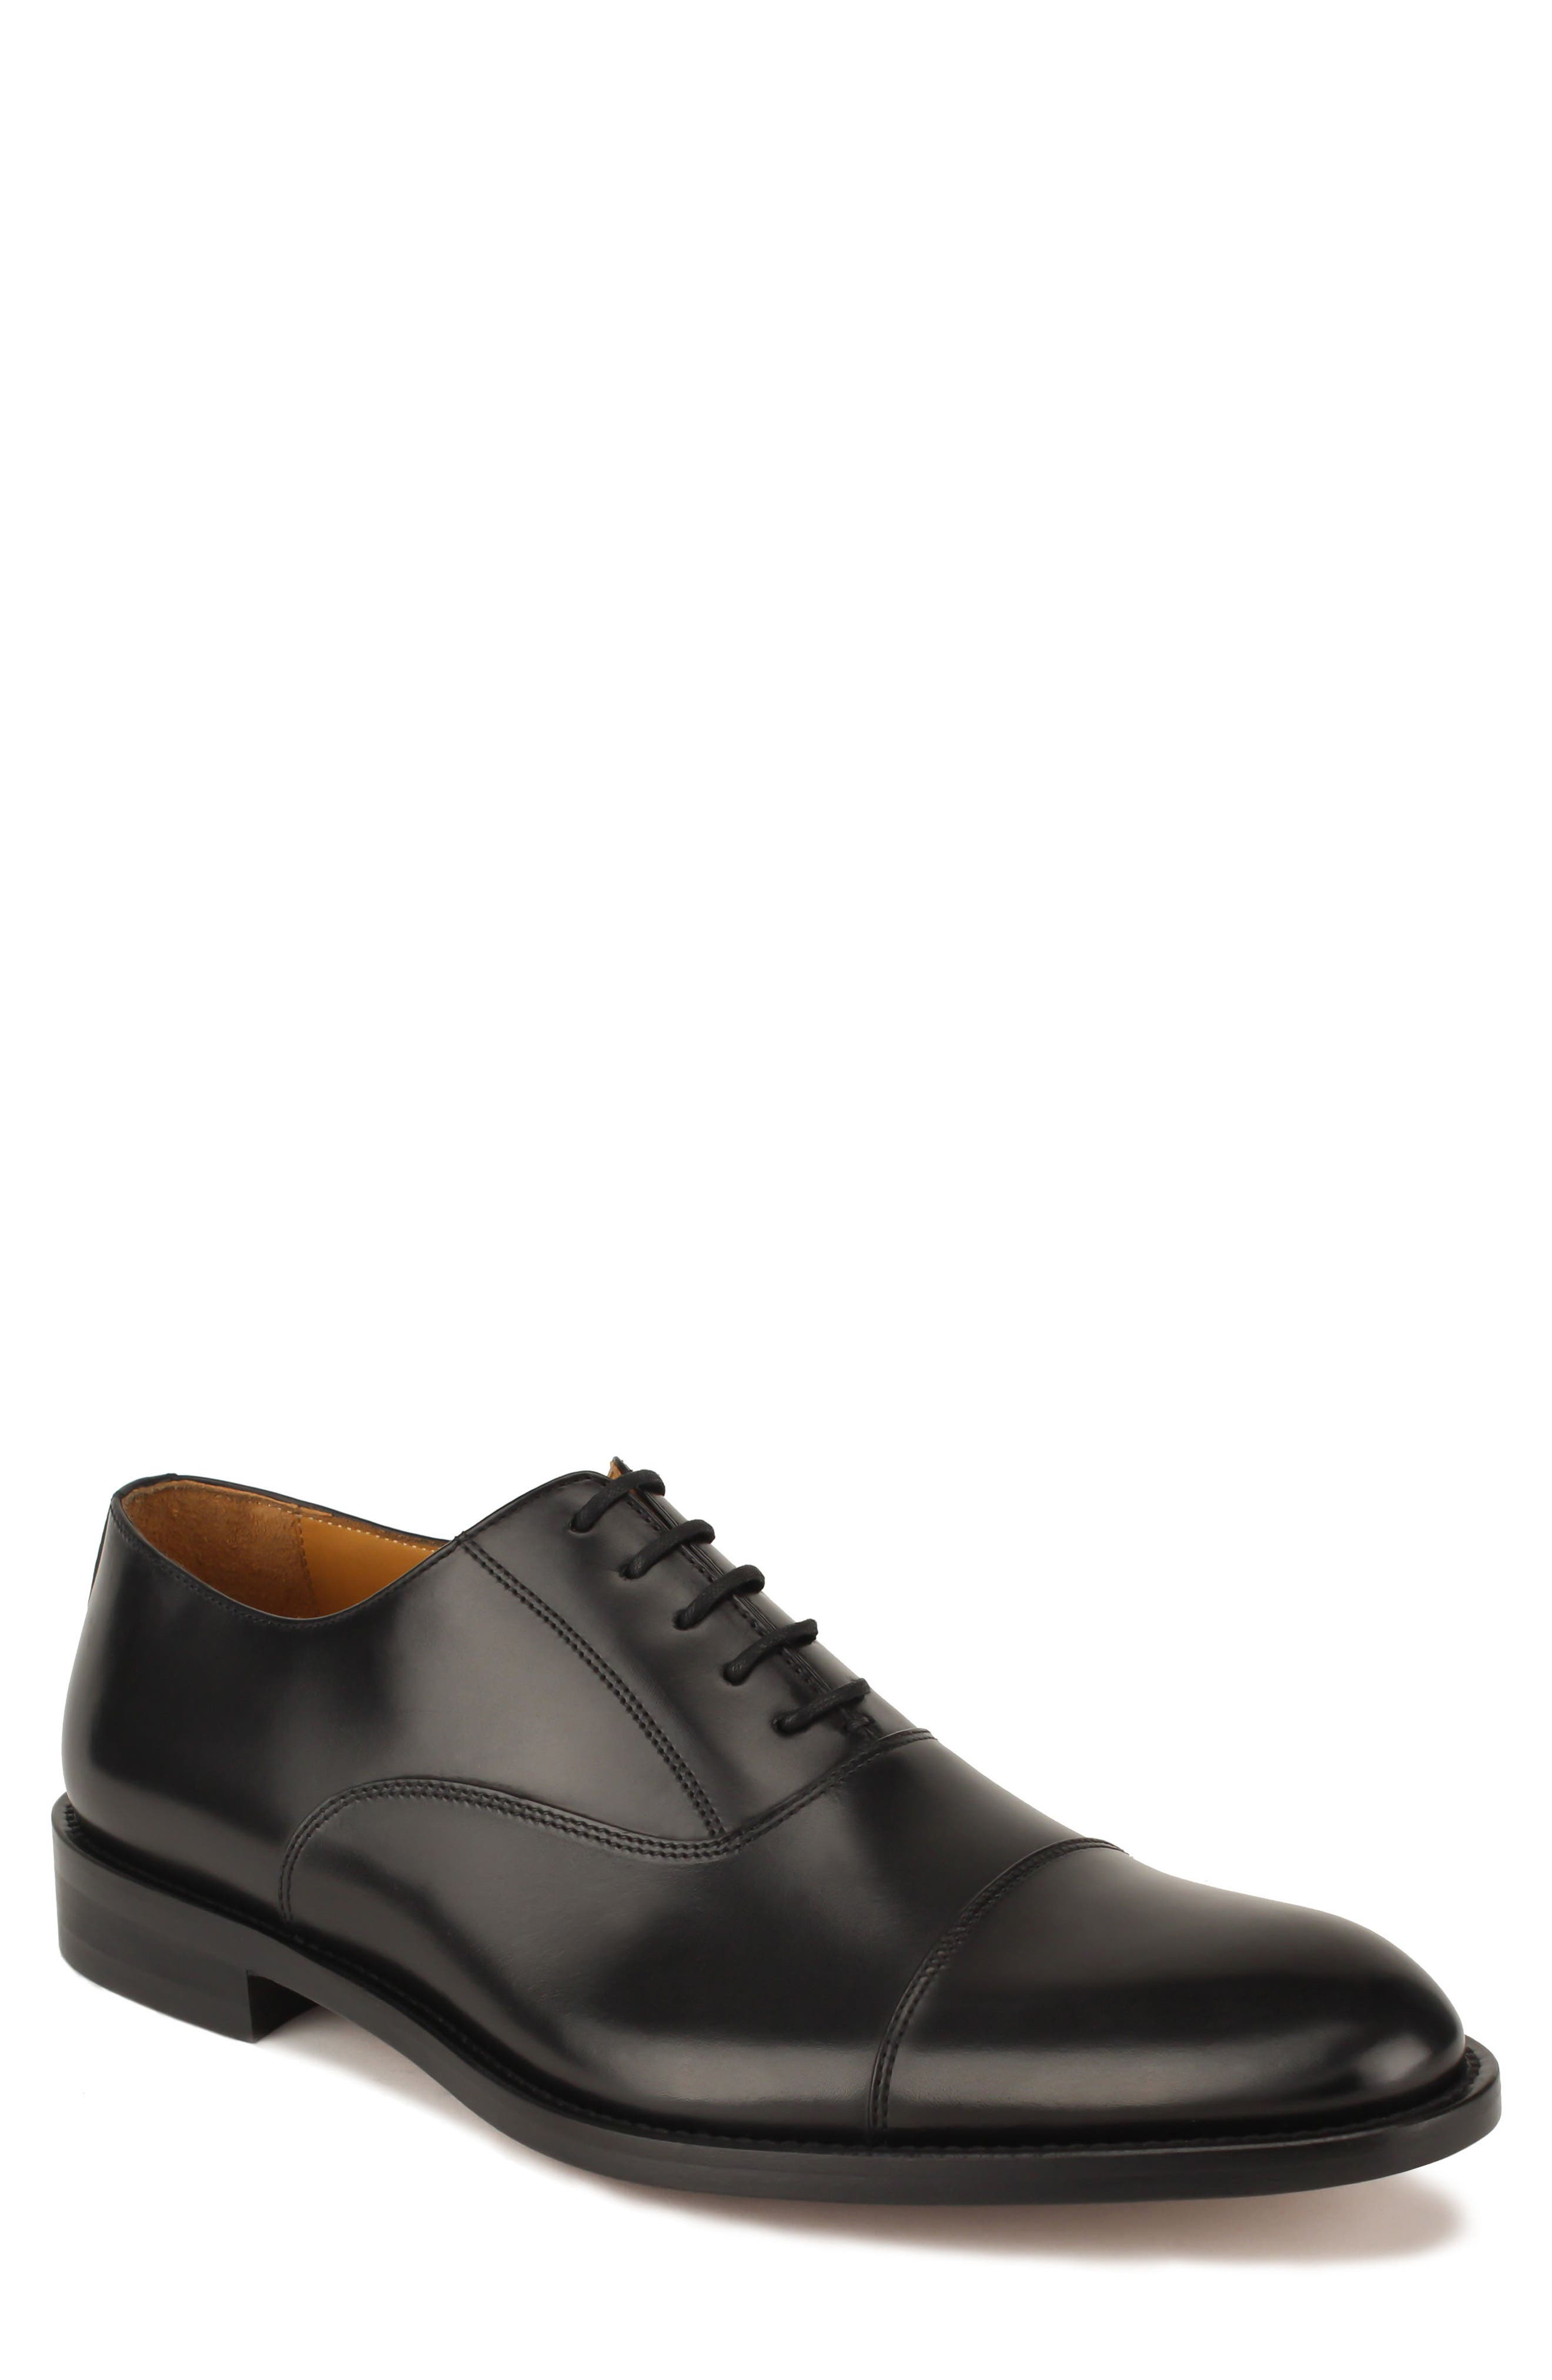 Nathan Cap Toe Oxford,                         Main,                         color, BLACK LEATHER